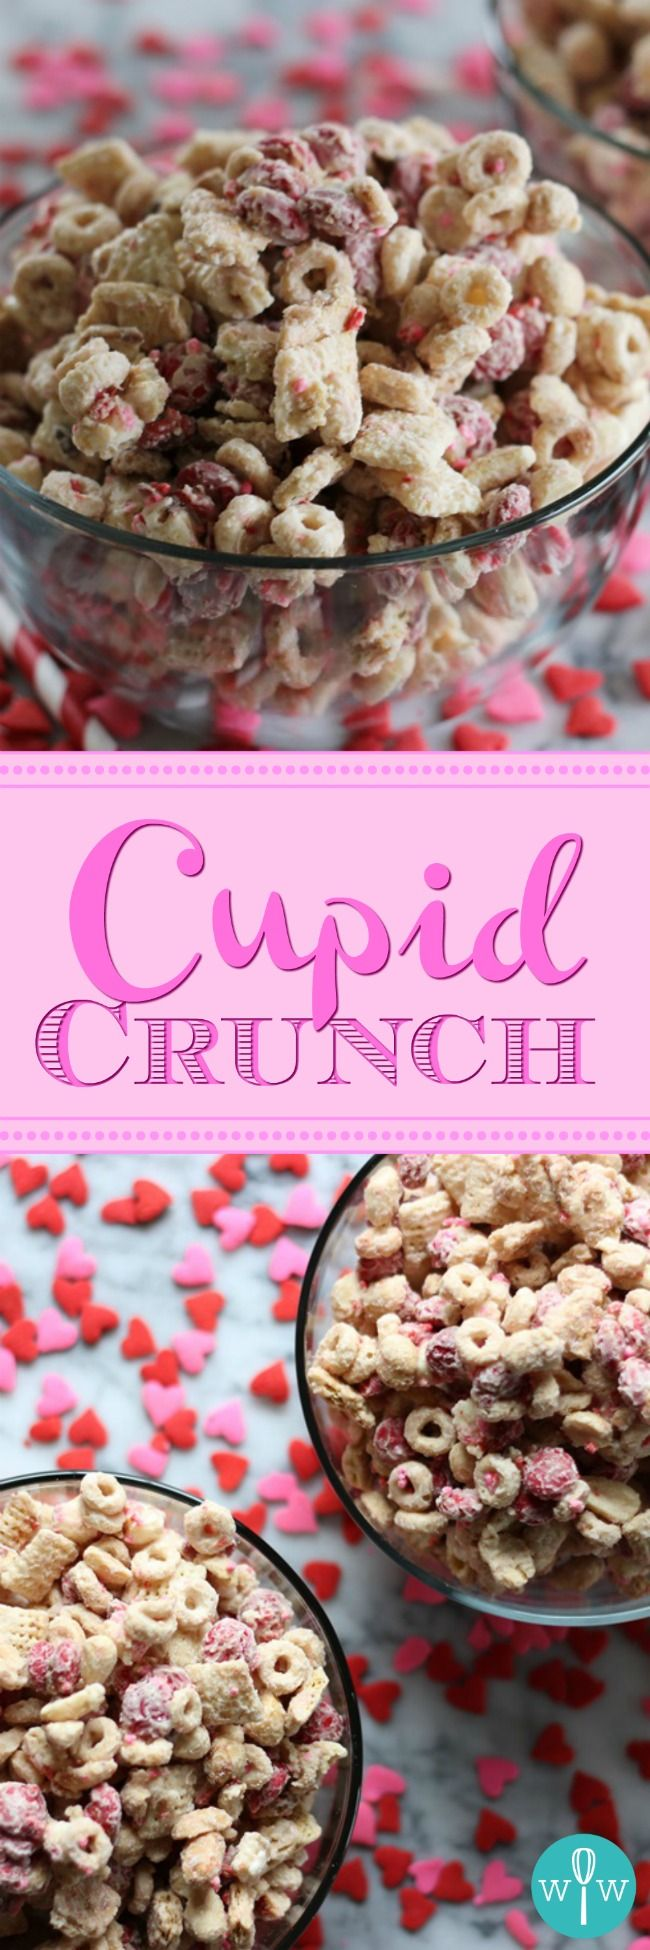 Cupid Crunch - An addictively sweet, crunchy, easy-to-make snack mix recipe made with Cheerios, Rice Chex, M&Ms, peanuts, graham crackers, and vanilla chips all smothered in a vanilla candy coating. | www.worthwhisking.com